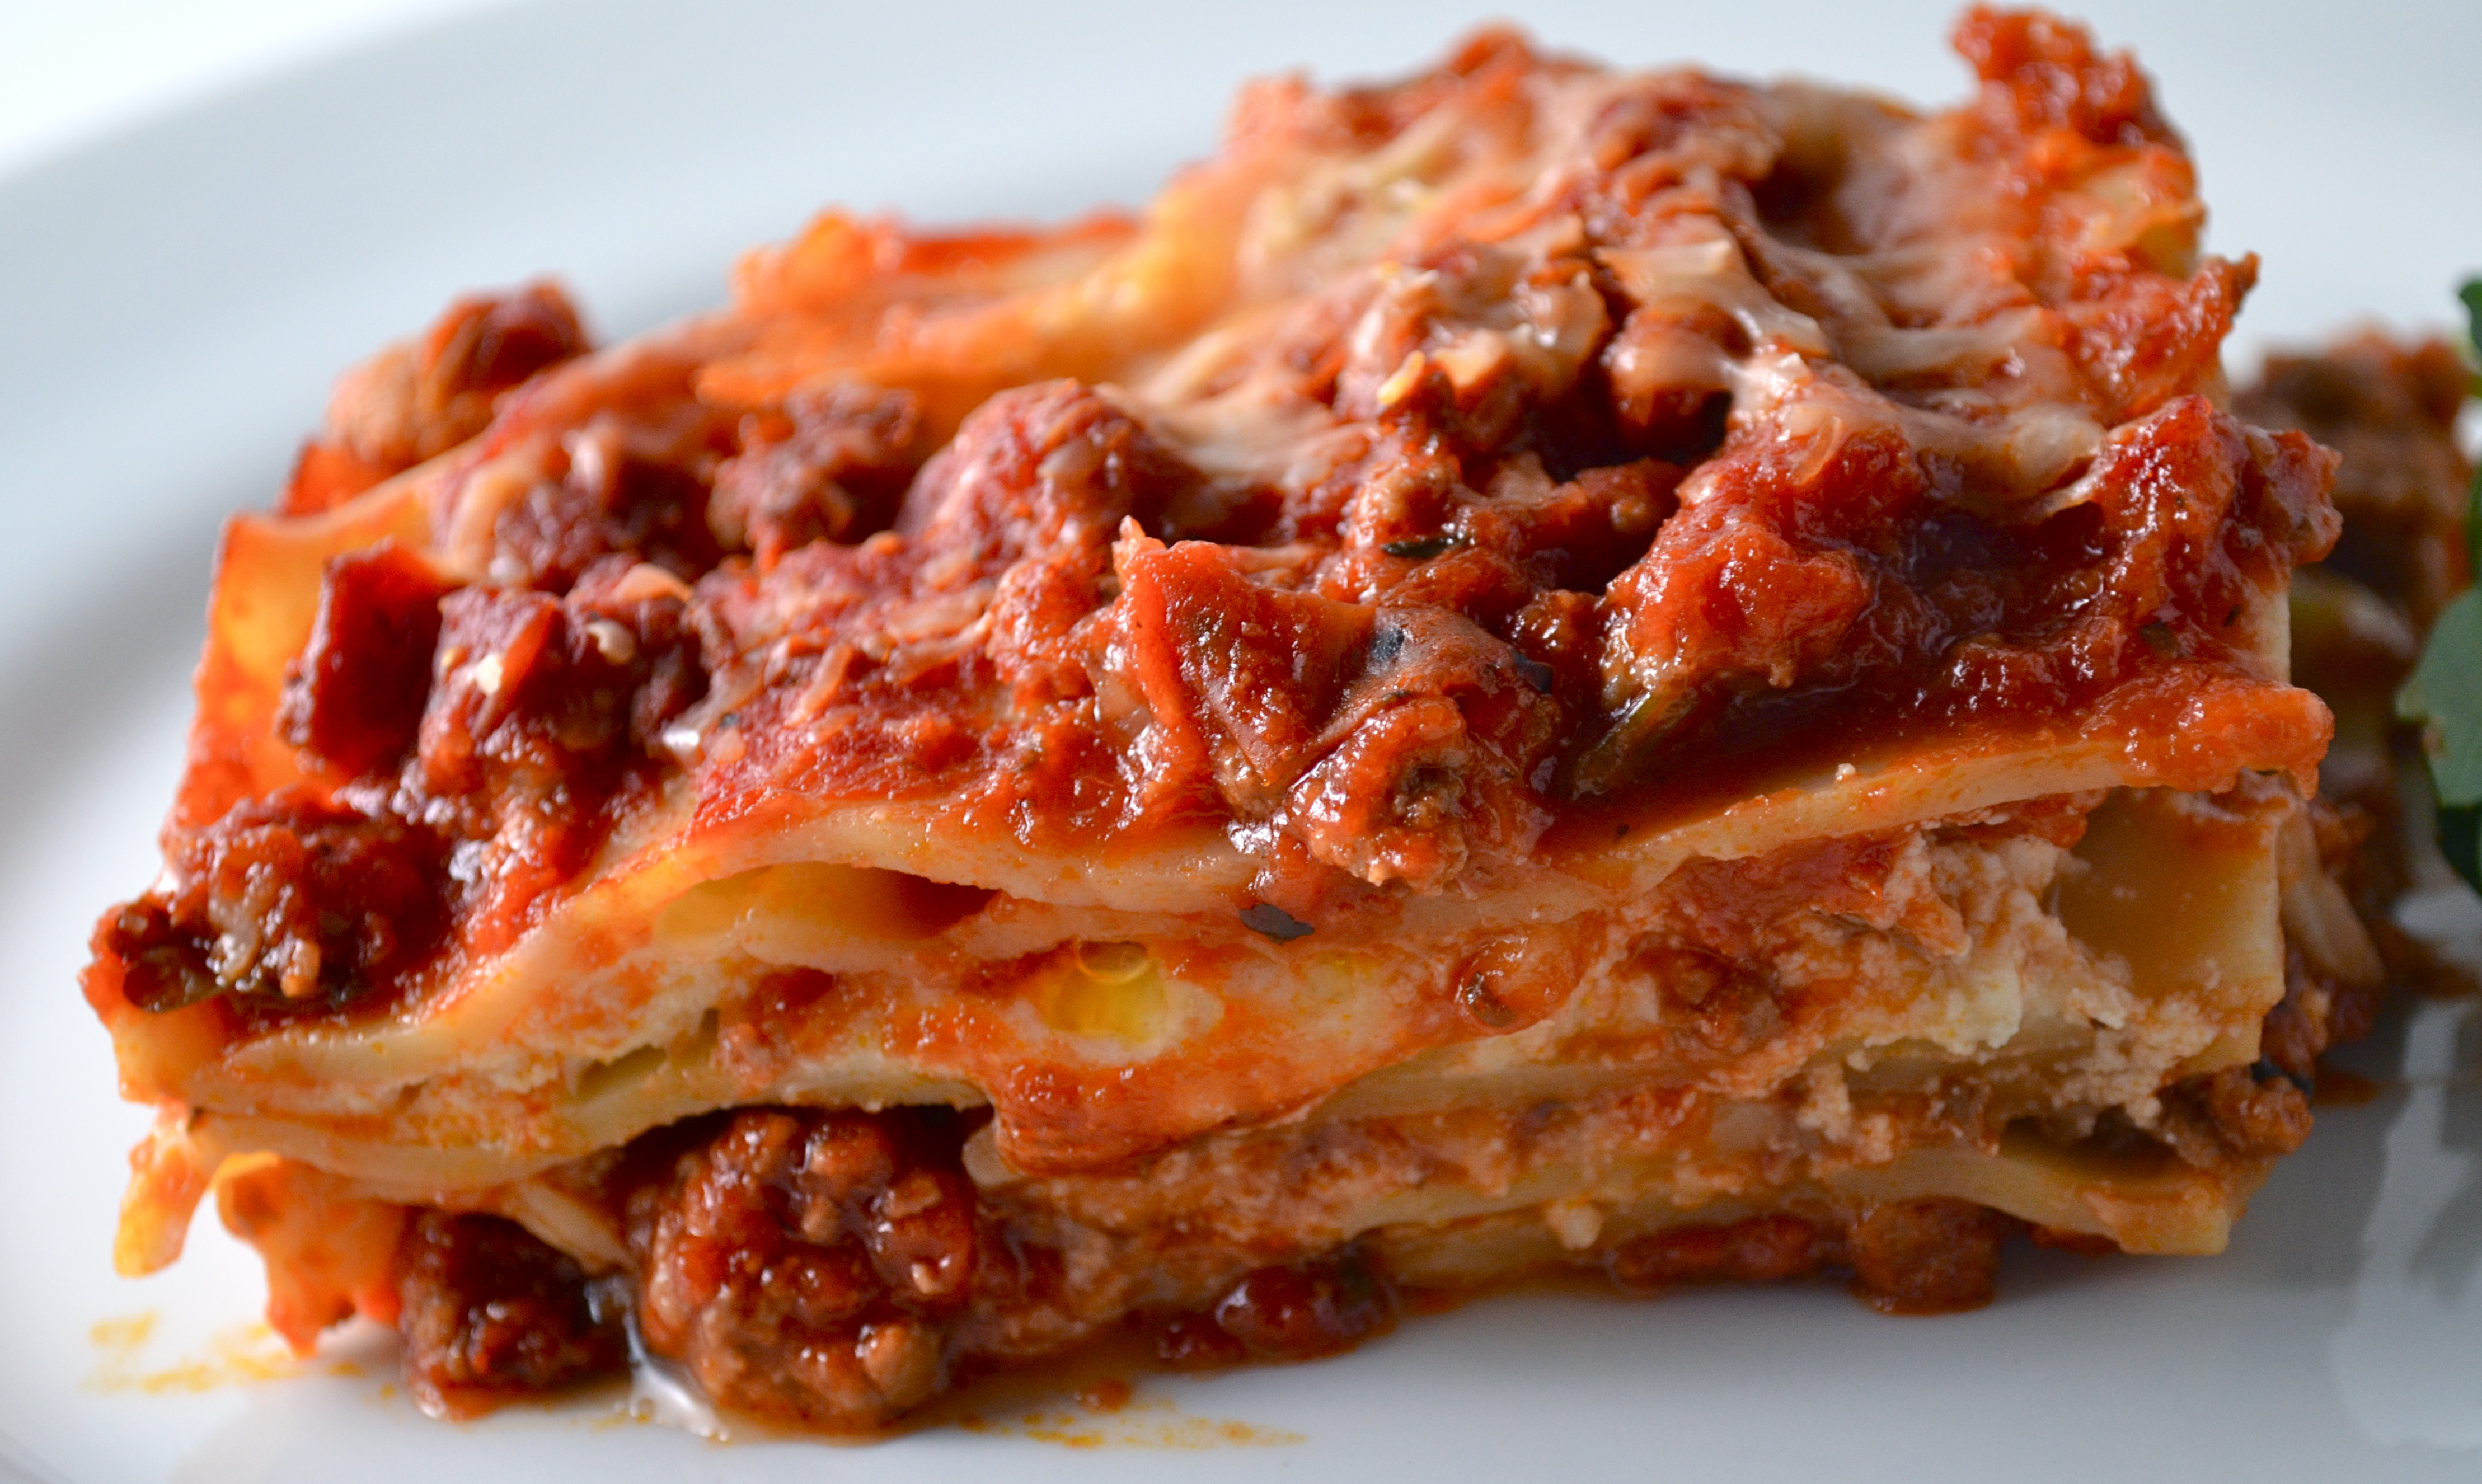 The World's Best Lasagna. New Music From Ages And Ages ...